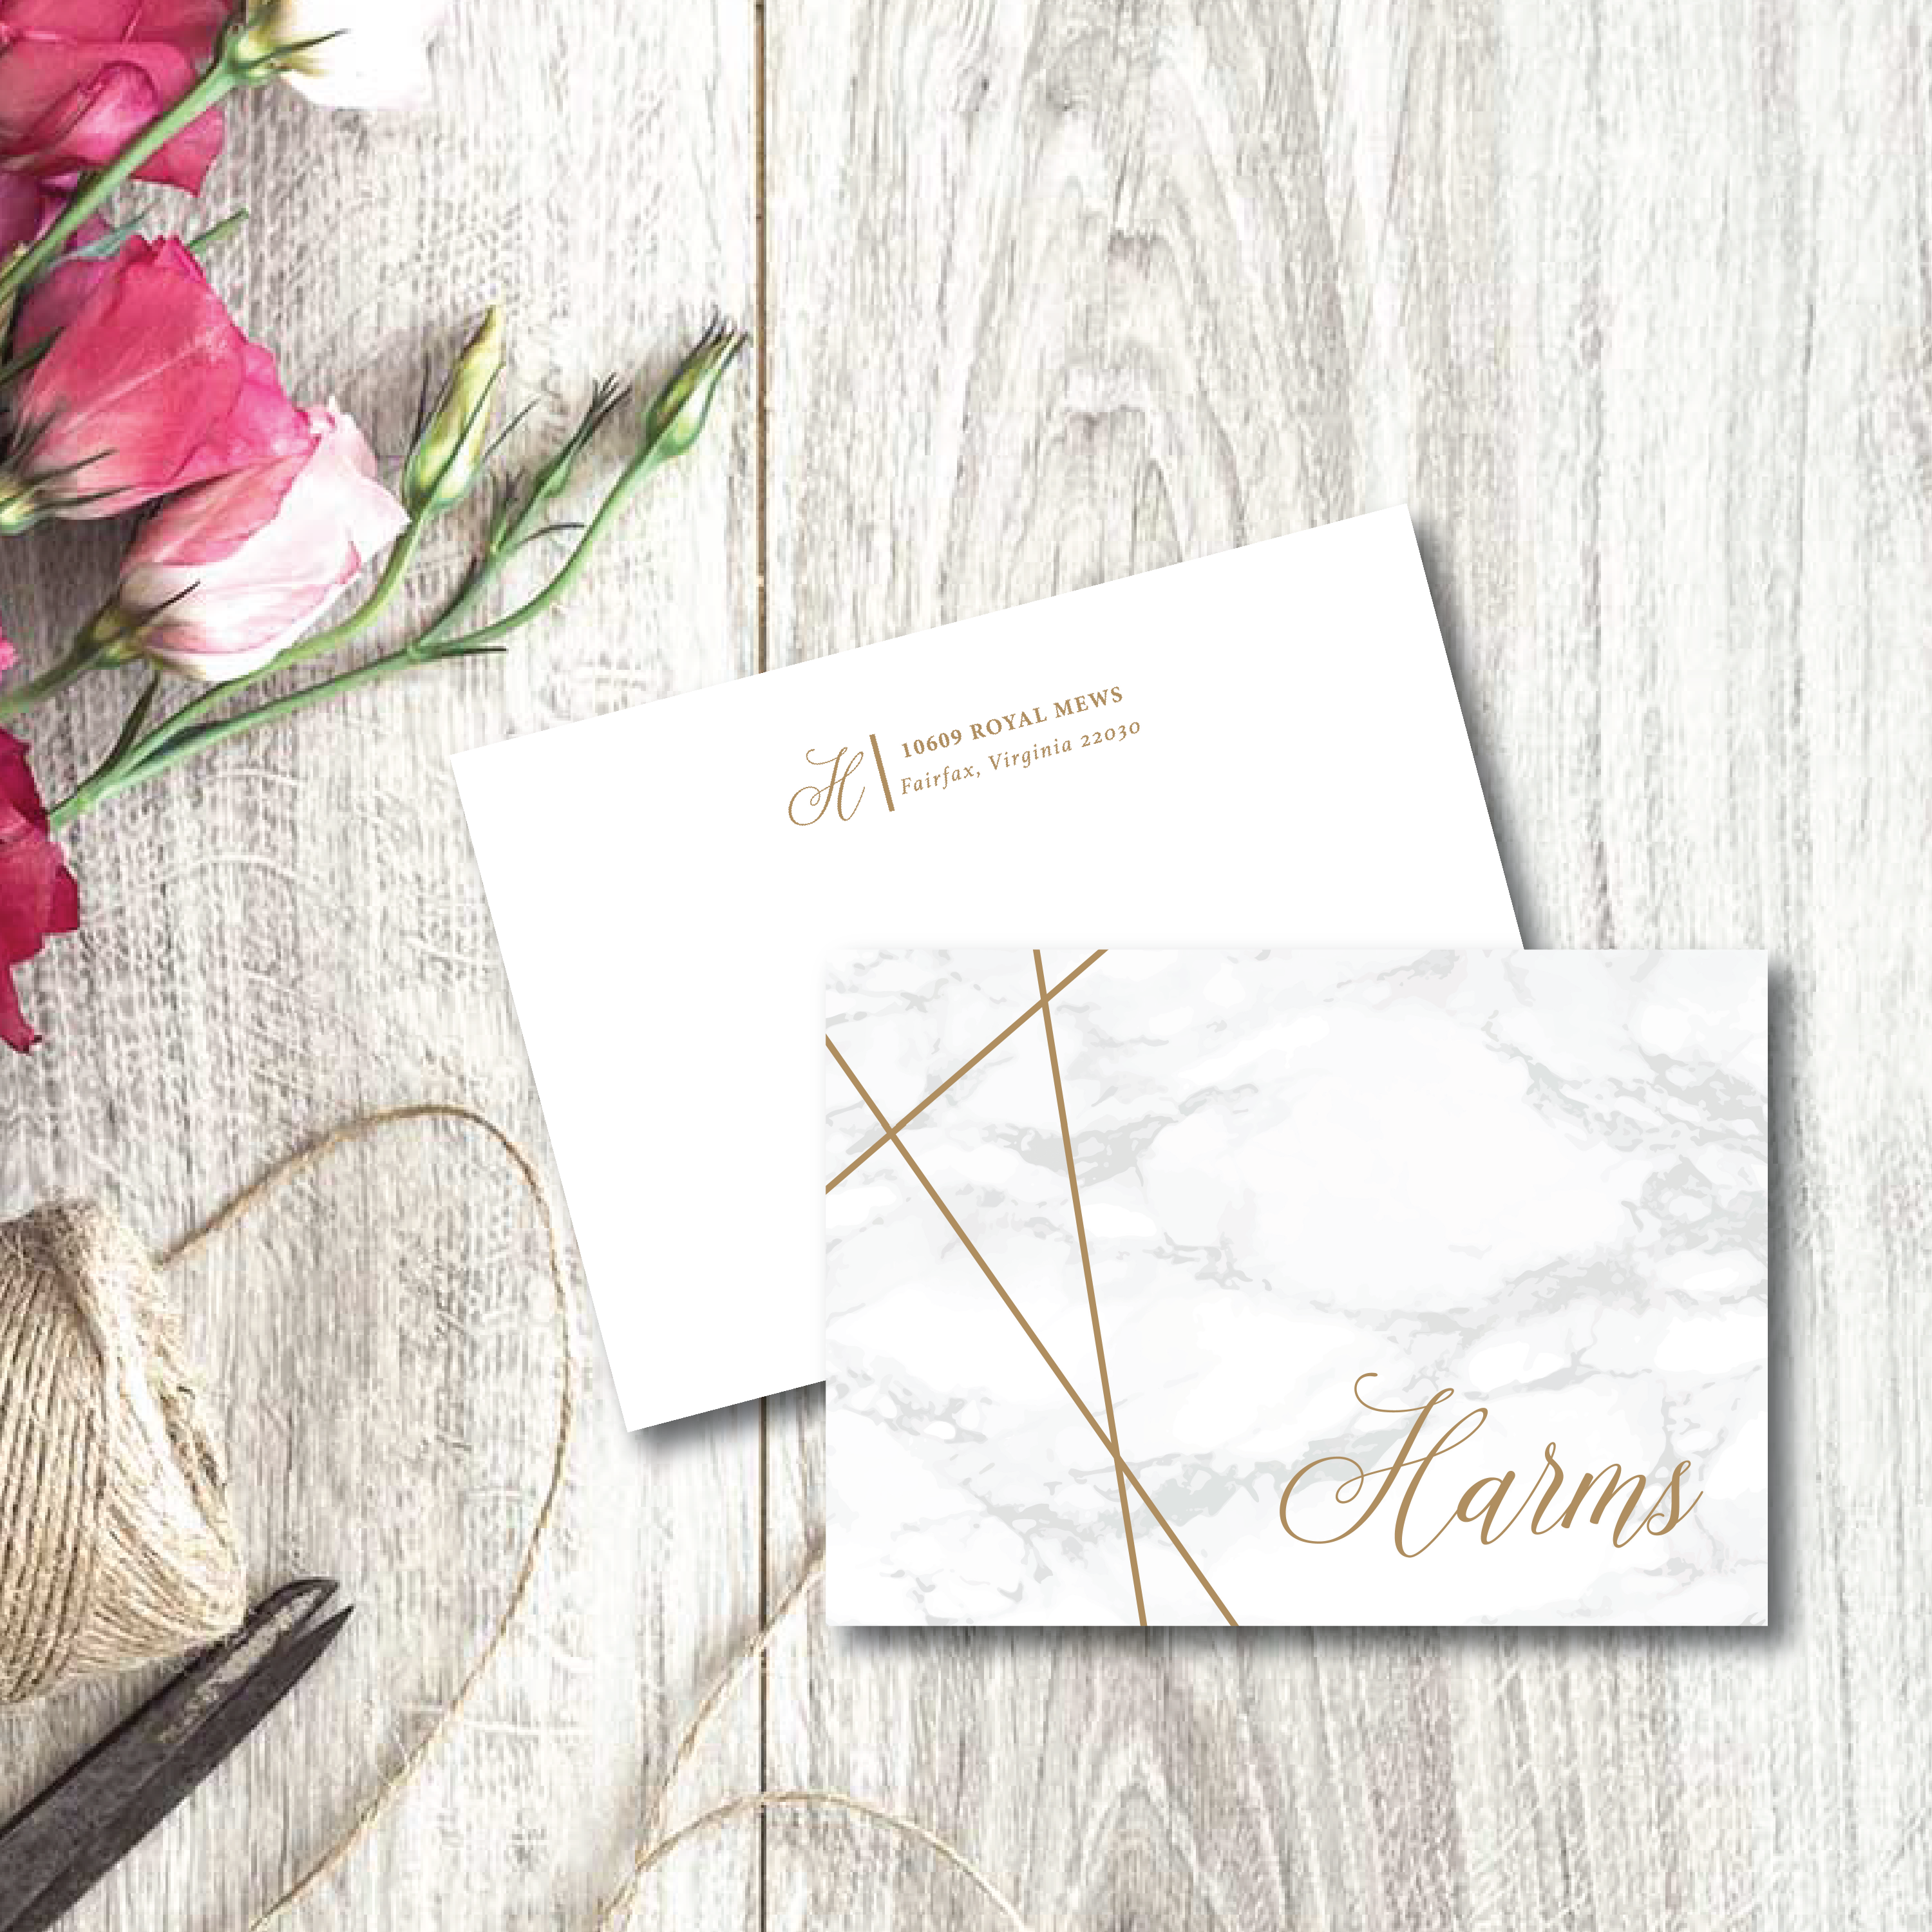 marble background, gold stripes and personalized name in a calligraphy script grace the front of these 4-bar folded note cards that can come with personalized envelopes.